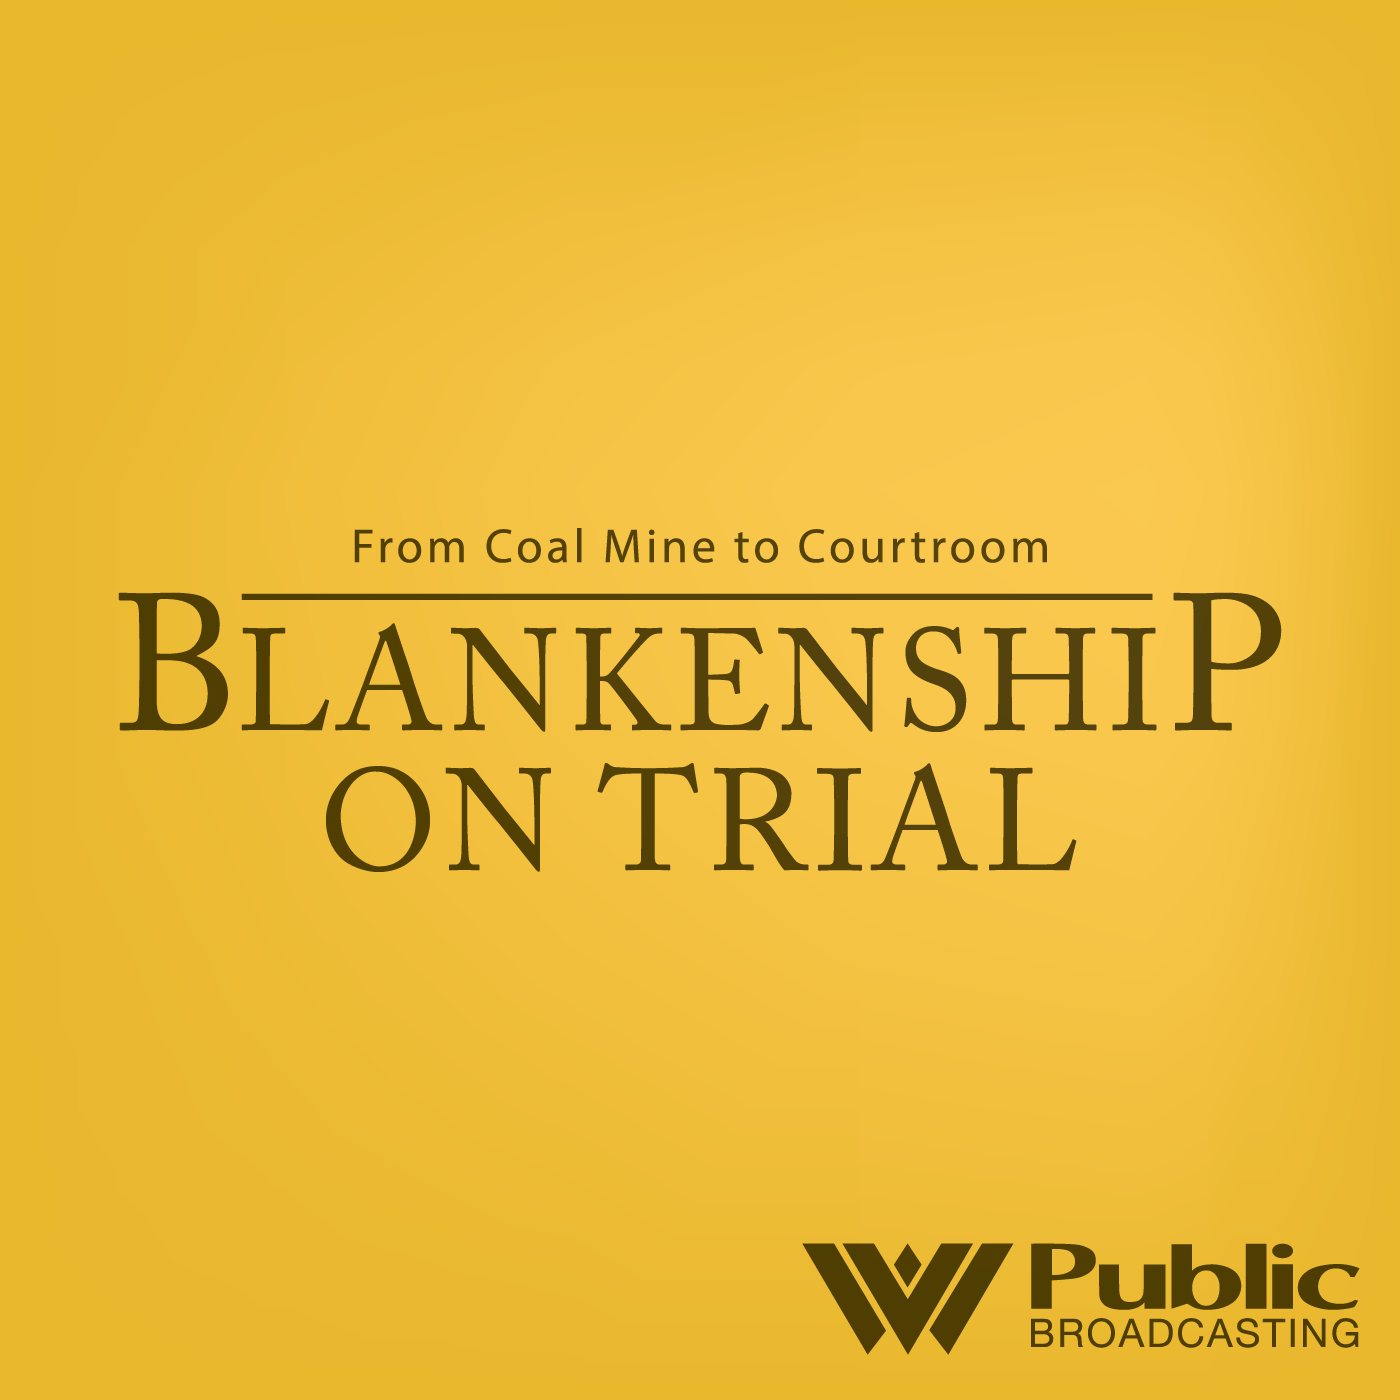 Blankenship on Trial